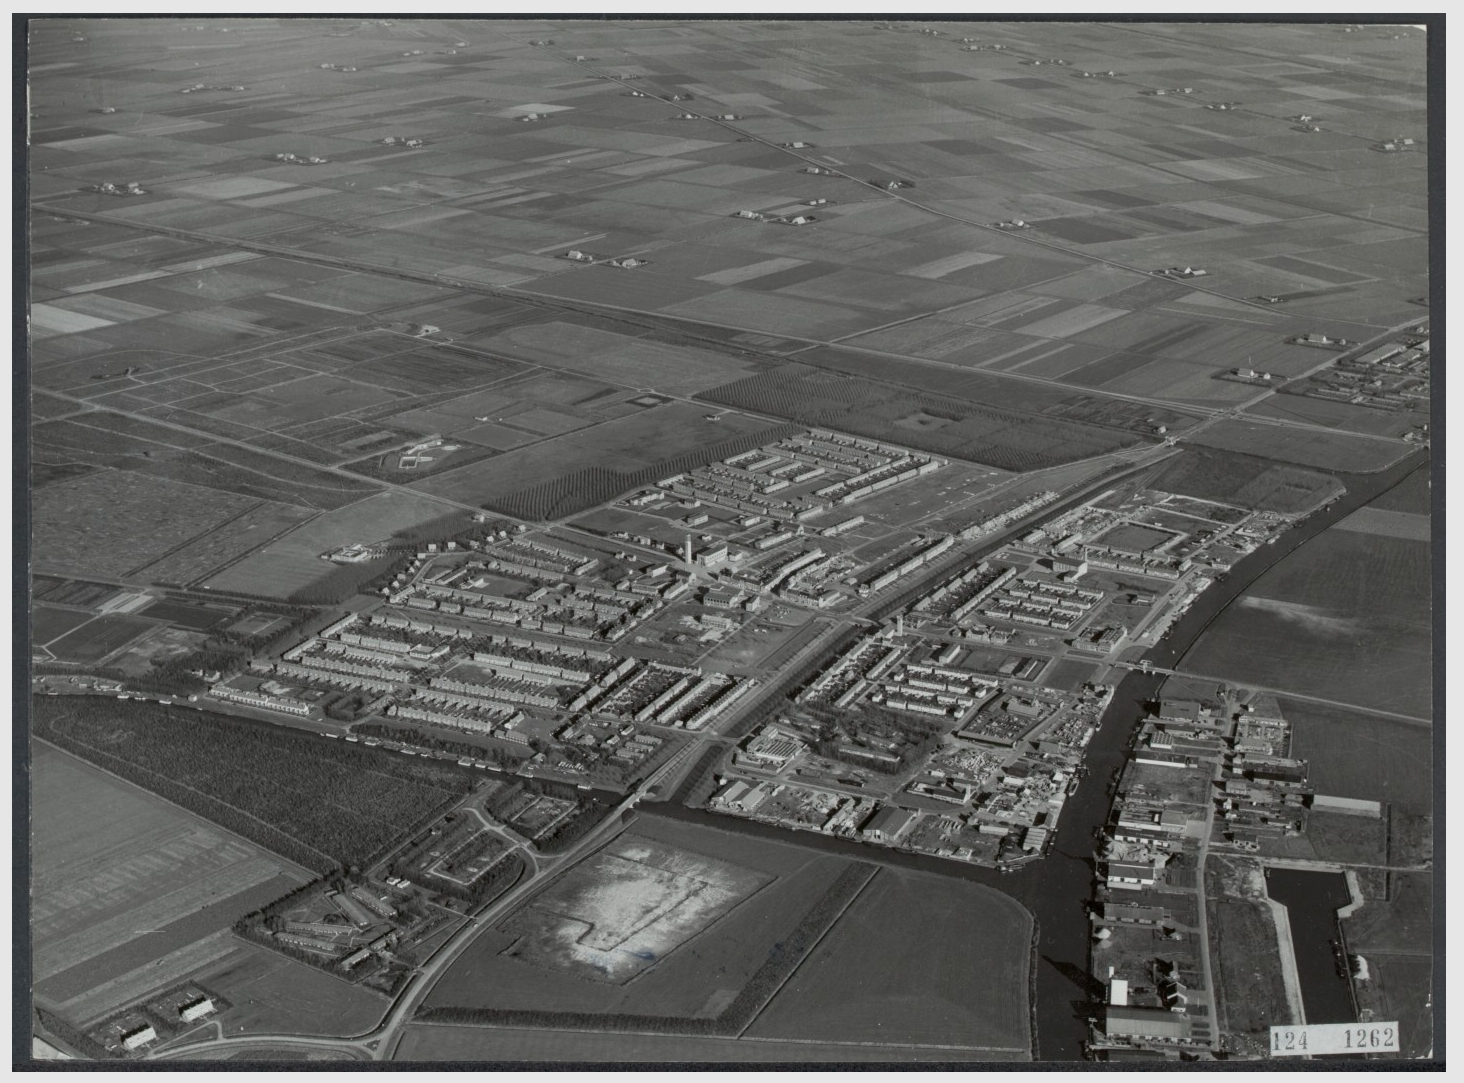 luchtfoto - Emmeloord-1956.png